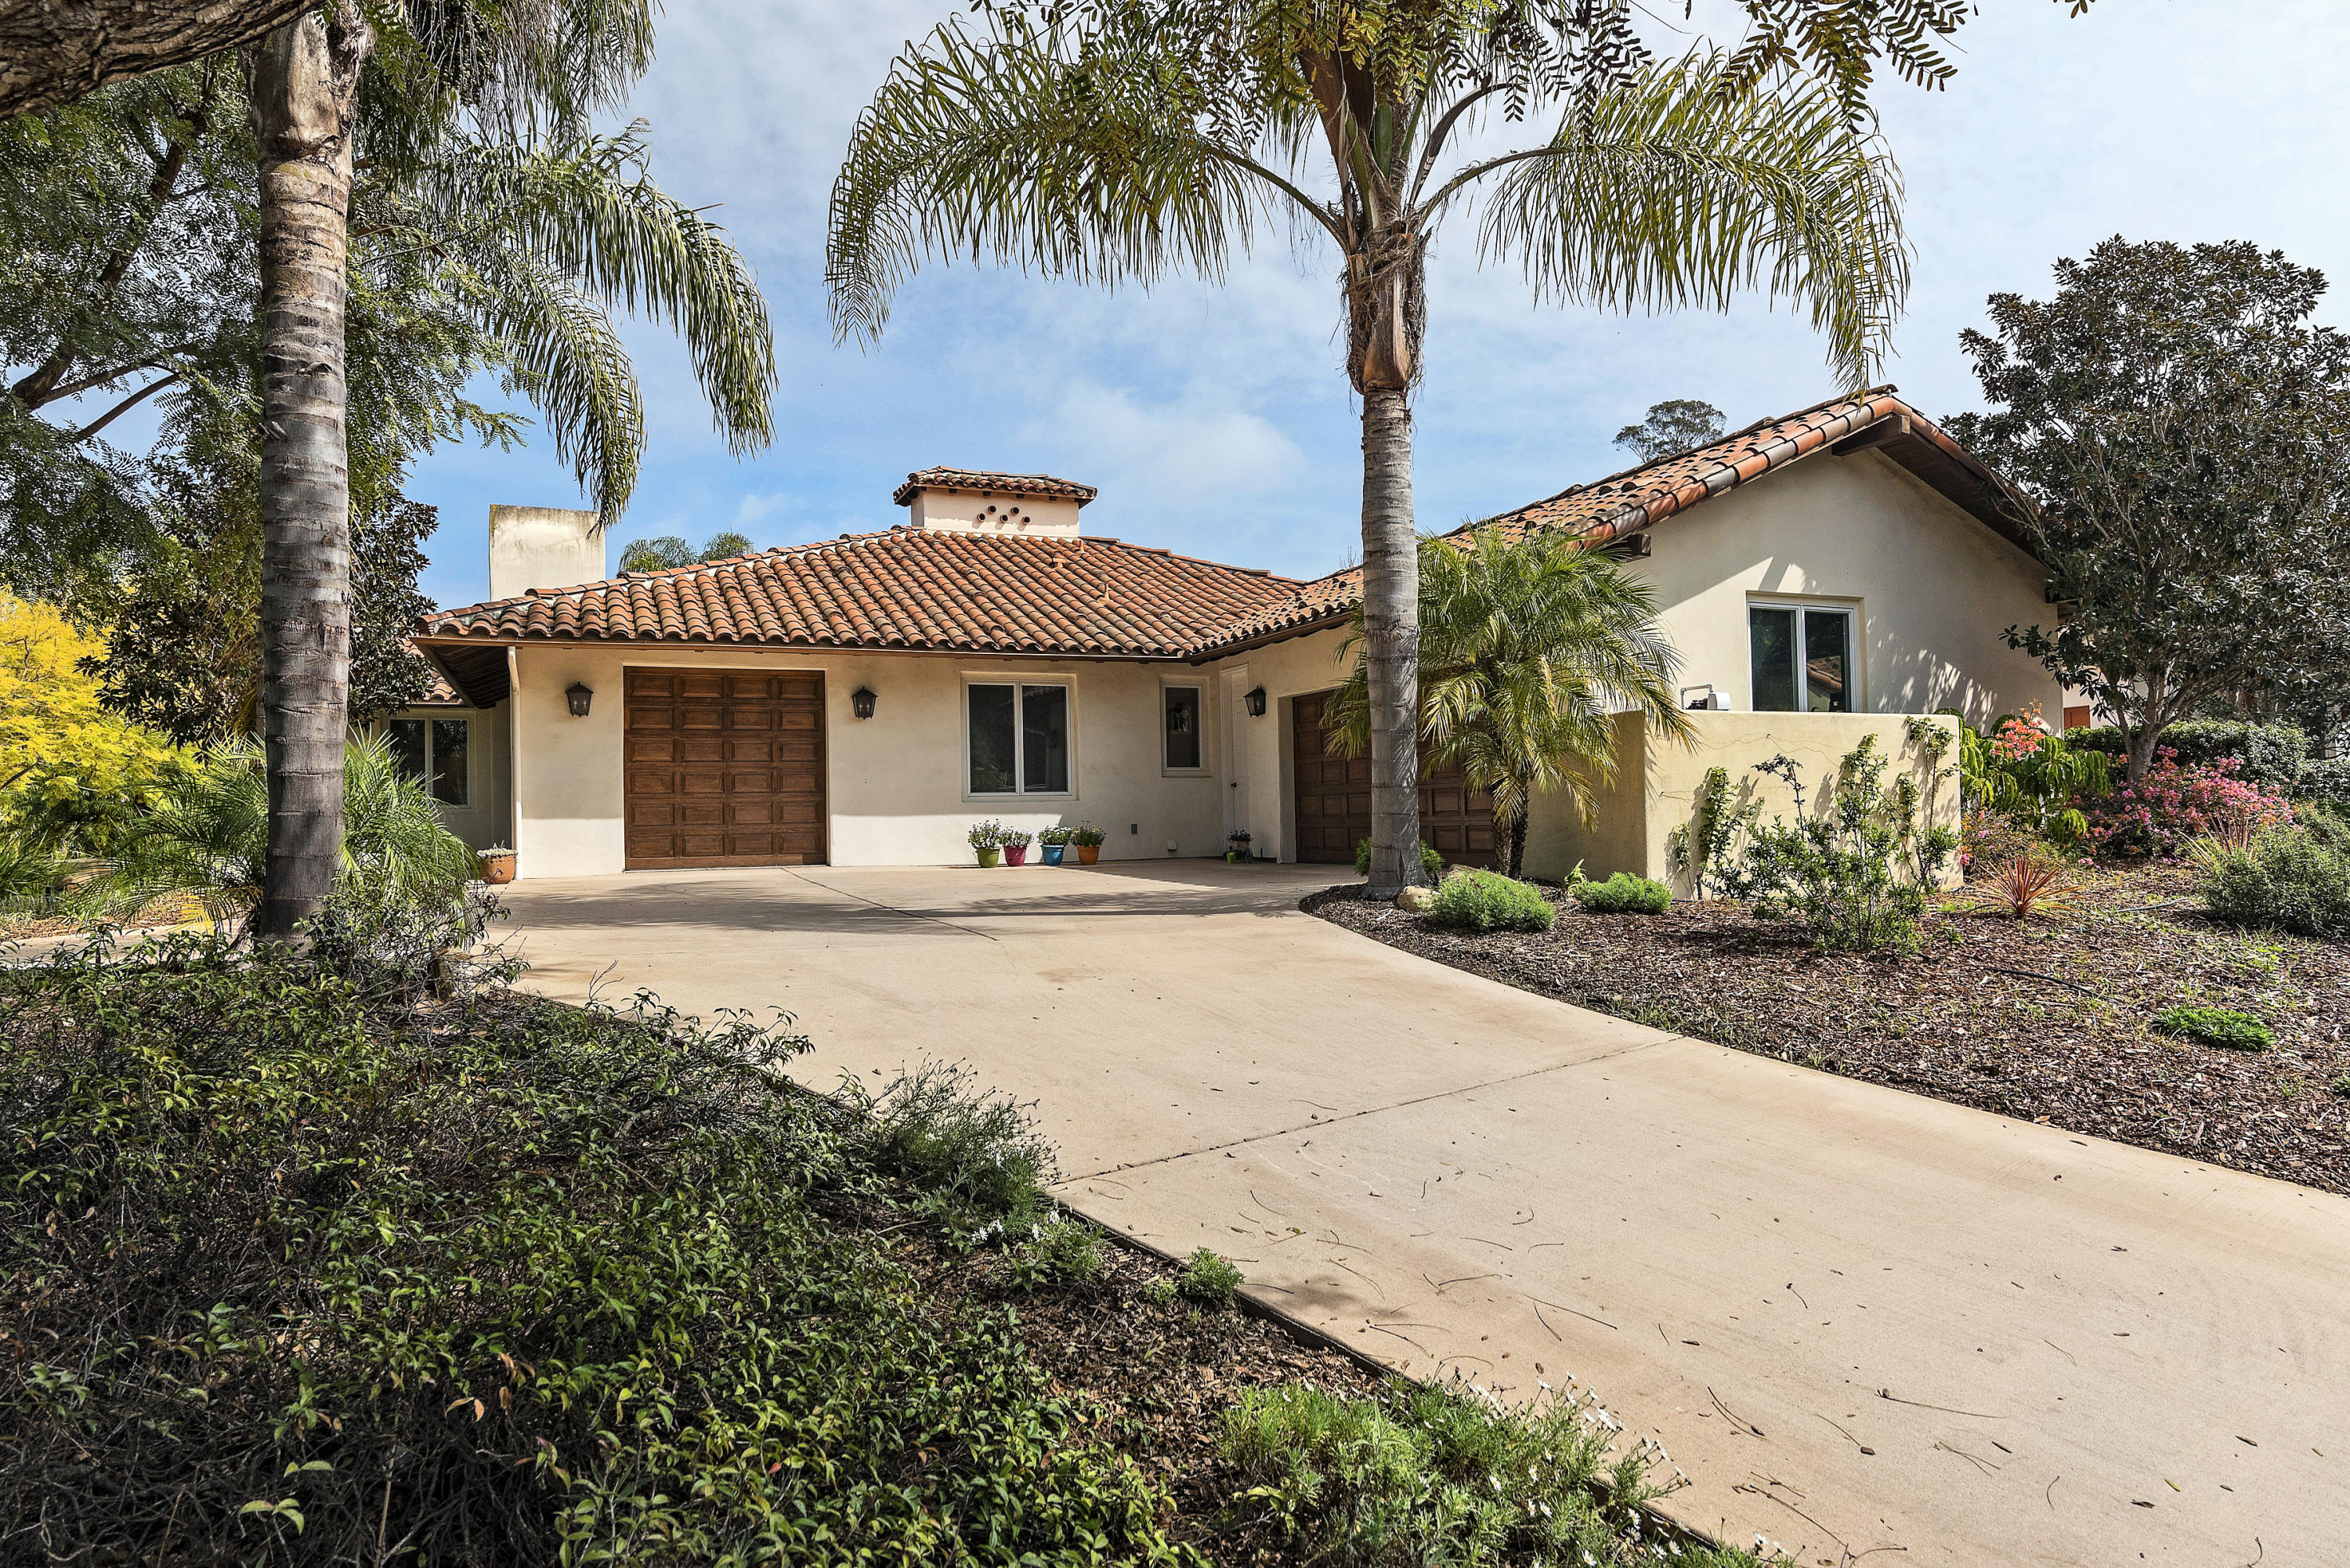 Property photo for 4663 Vintage Ranch Ln Santa Barbara, California 93110 - 18-3659